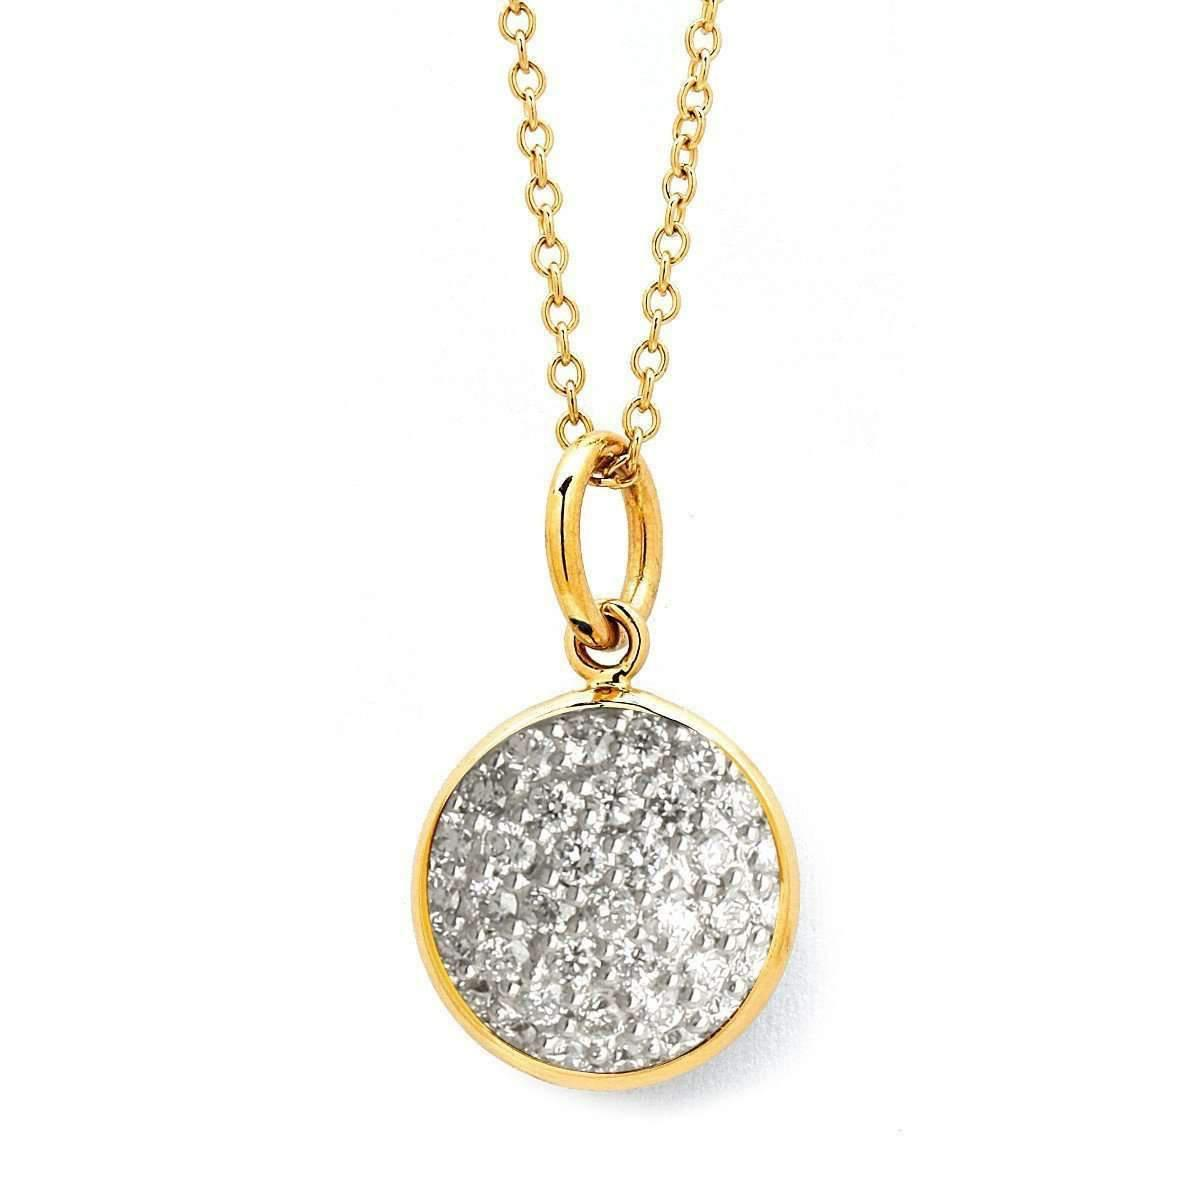 Syna 18kt Small Drop Necklace With Black Diamonds GKikO